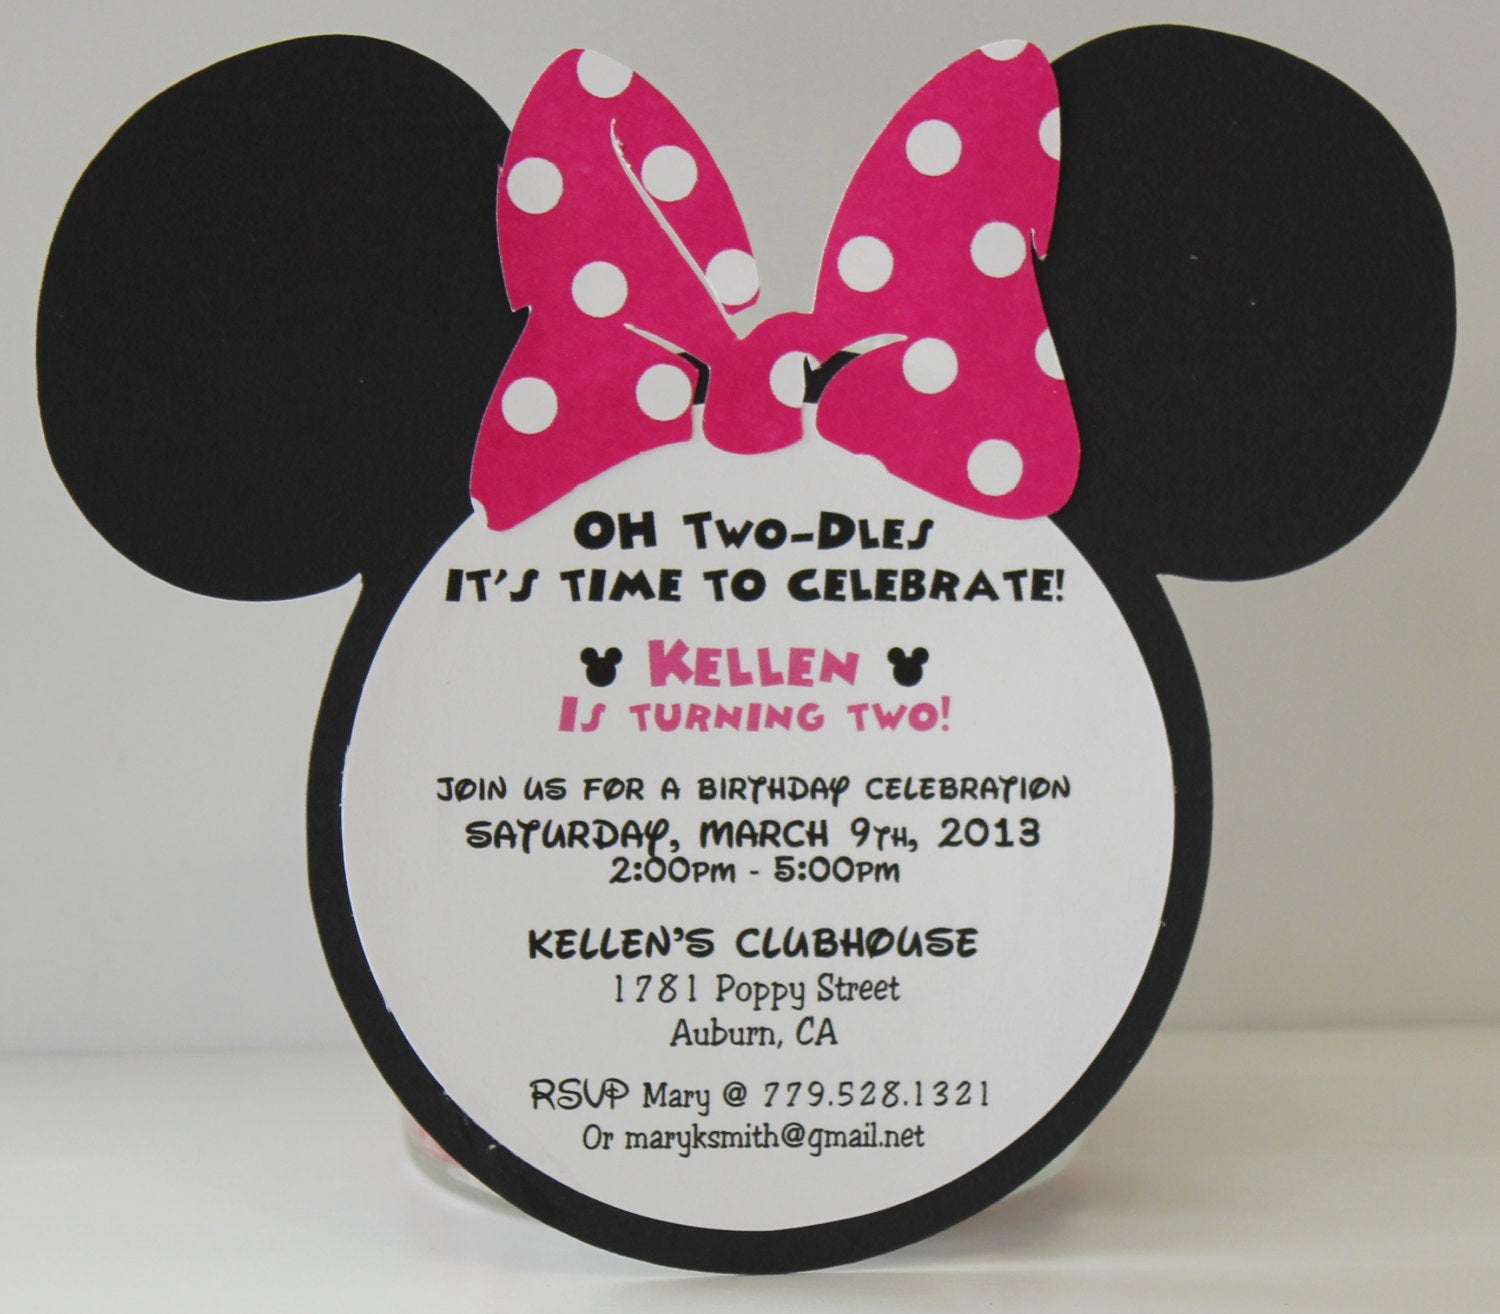 Minnie Mouse Birthday Invitation Wording Beautiful Minnie Mouse Birthday Invitations Invitation Pink Polka